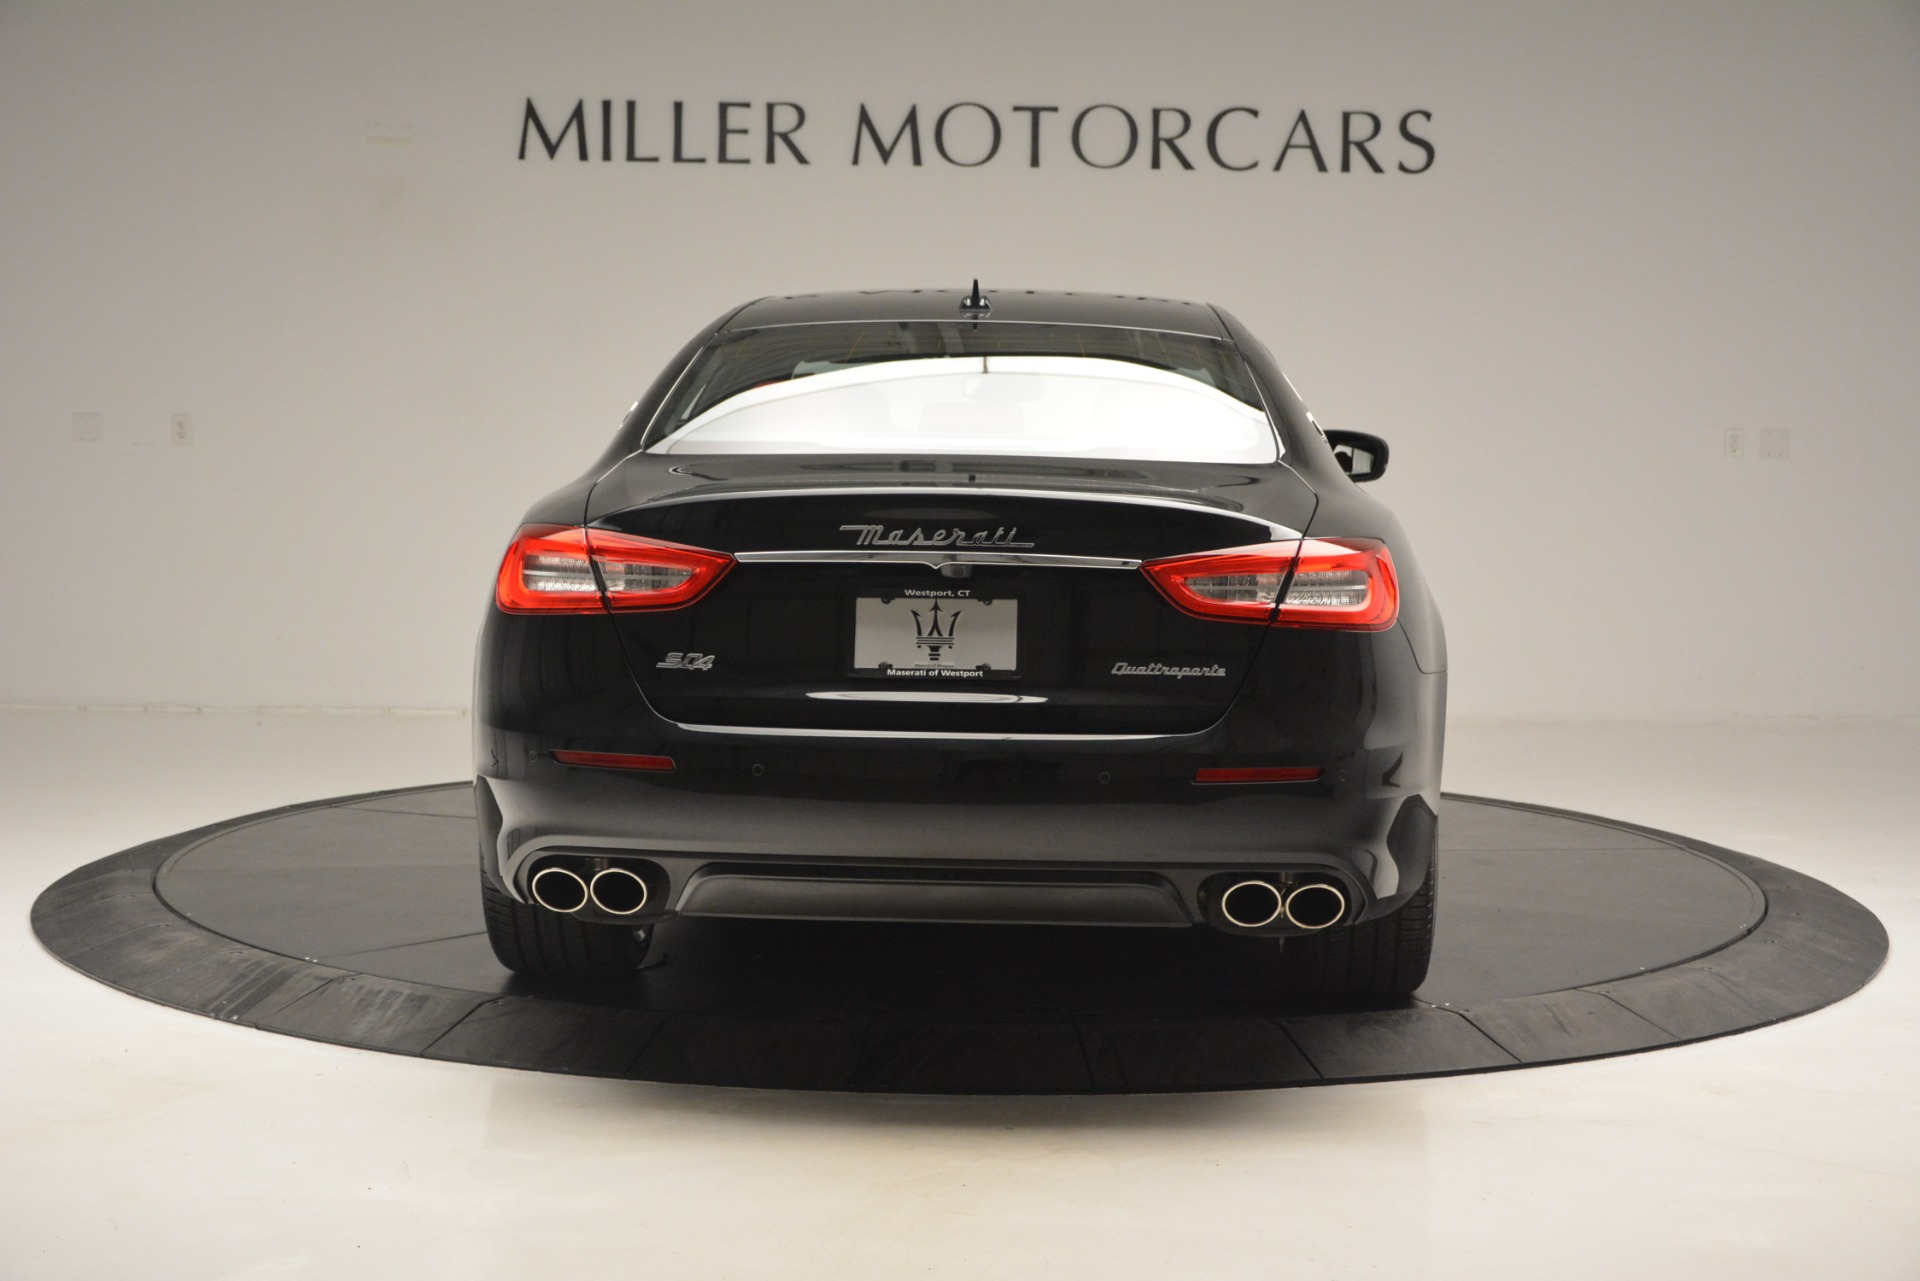 New 2019 Maserati Quattroporte S Q4 GranLusso For Sale In Greenwich, CT 2718_p6